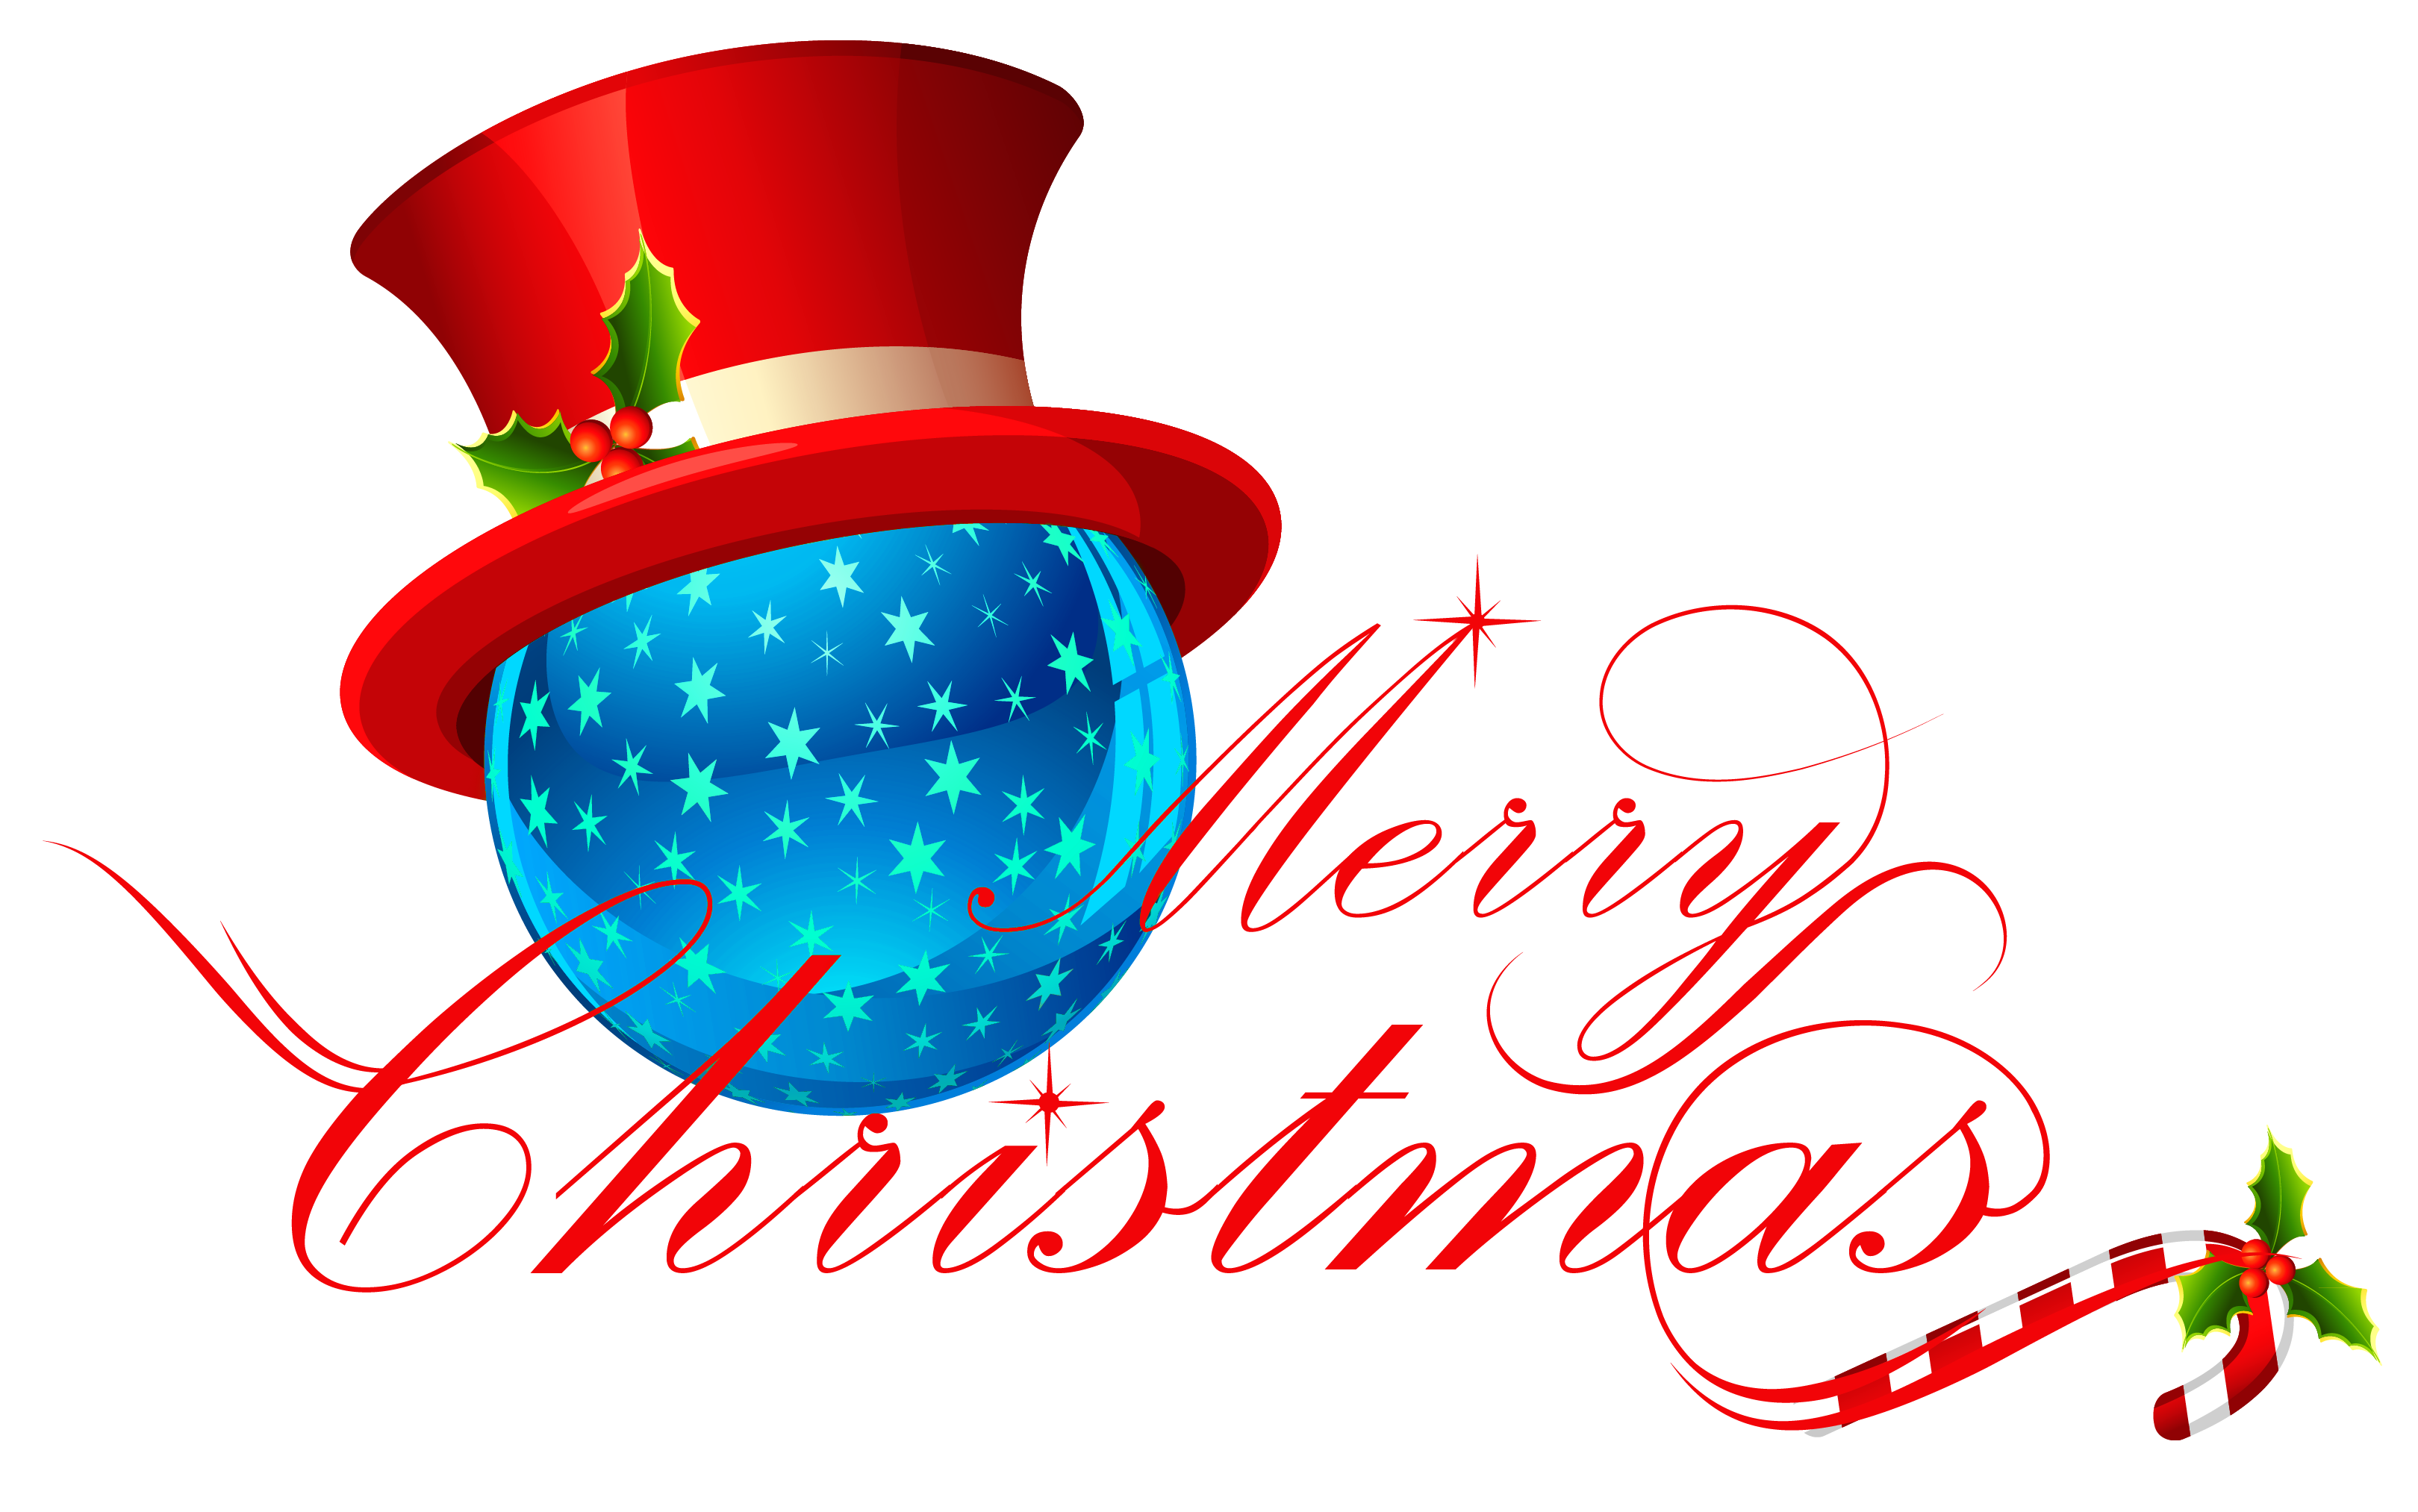 Ladybug clipart christmas. Transparent merry with blue